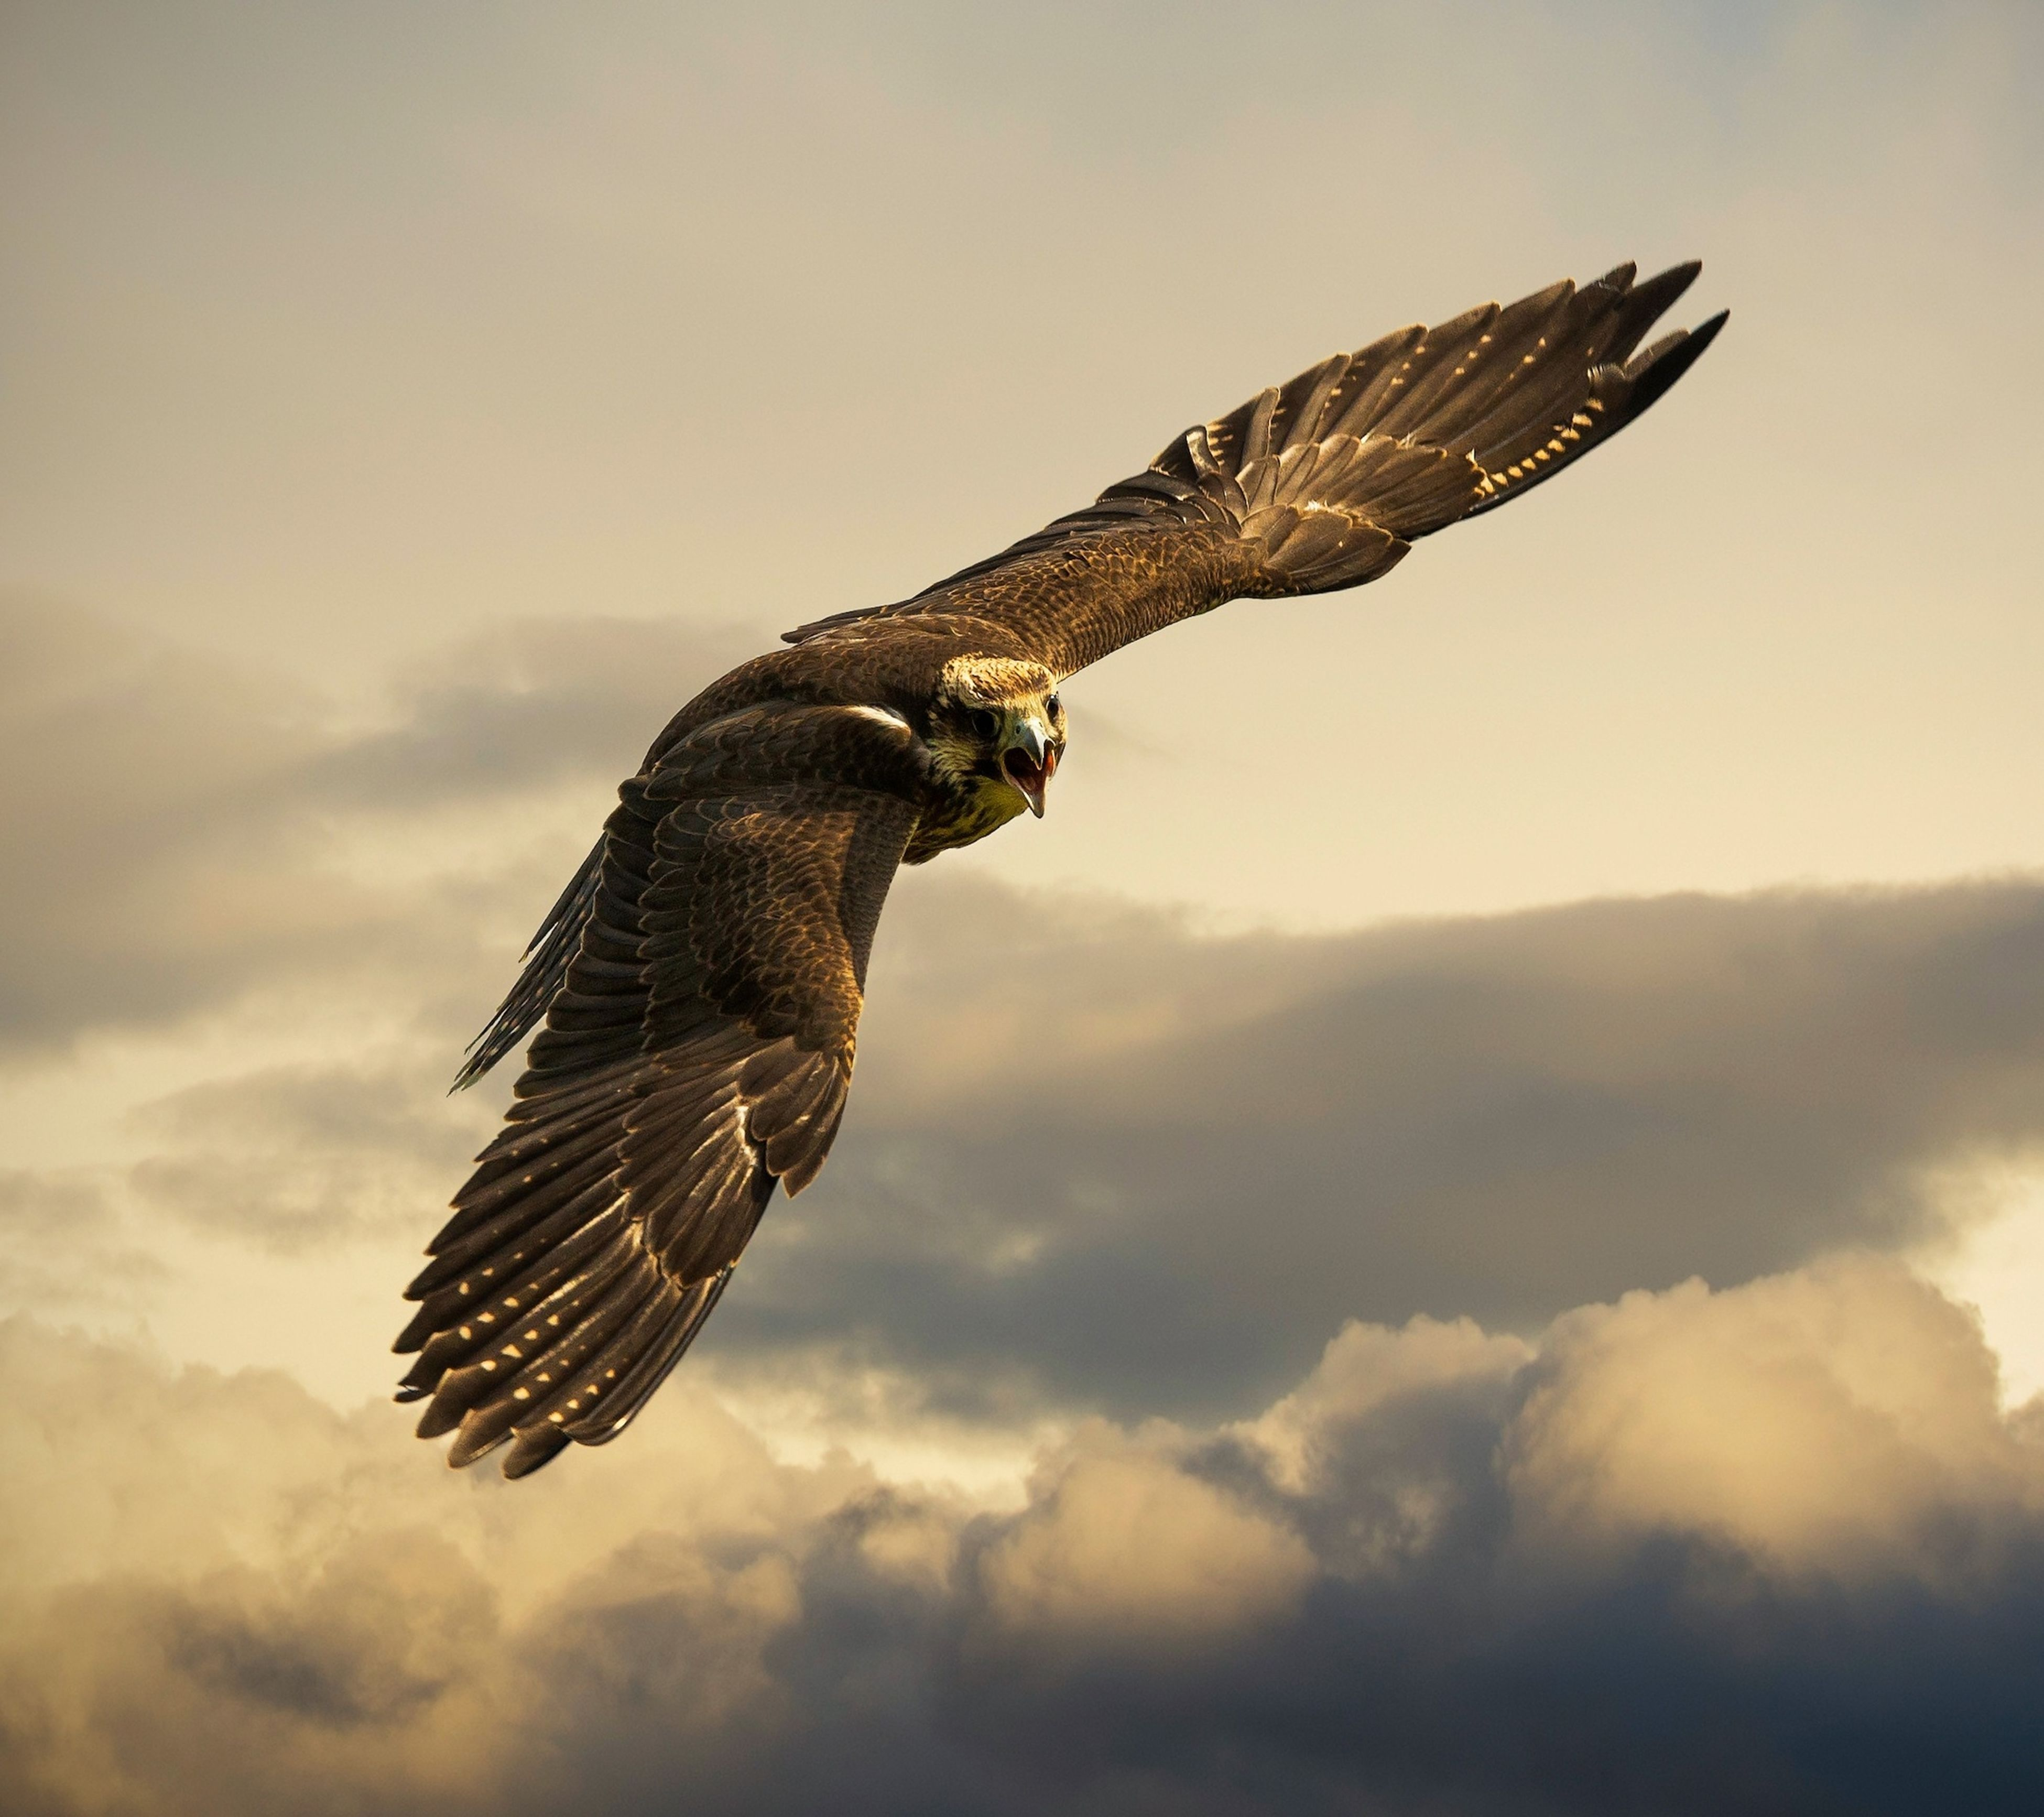 bird, flying, one animal, spread wings, bird of prey, mid-air, animals in the wild, animal themes, animal wildlife, sky, nature, eagle - bird, cloud - sky, no people, beauty in nature, hawk - bird, outdoors, day, bald eagle, vulture, close-up